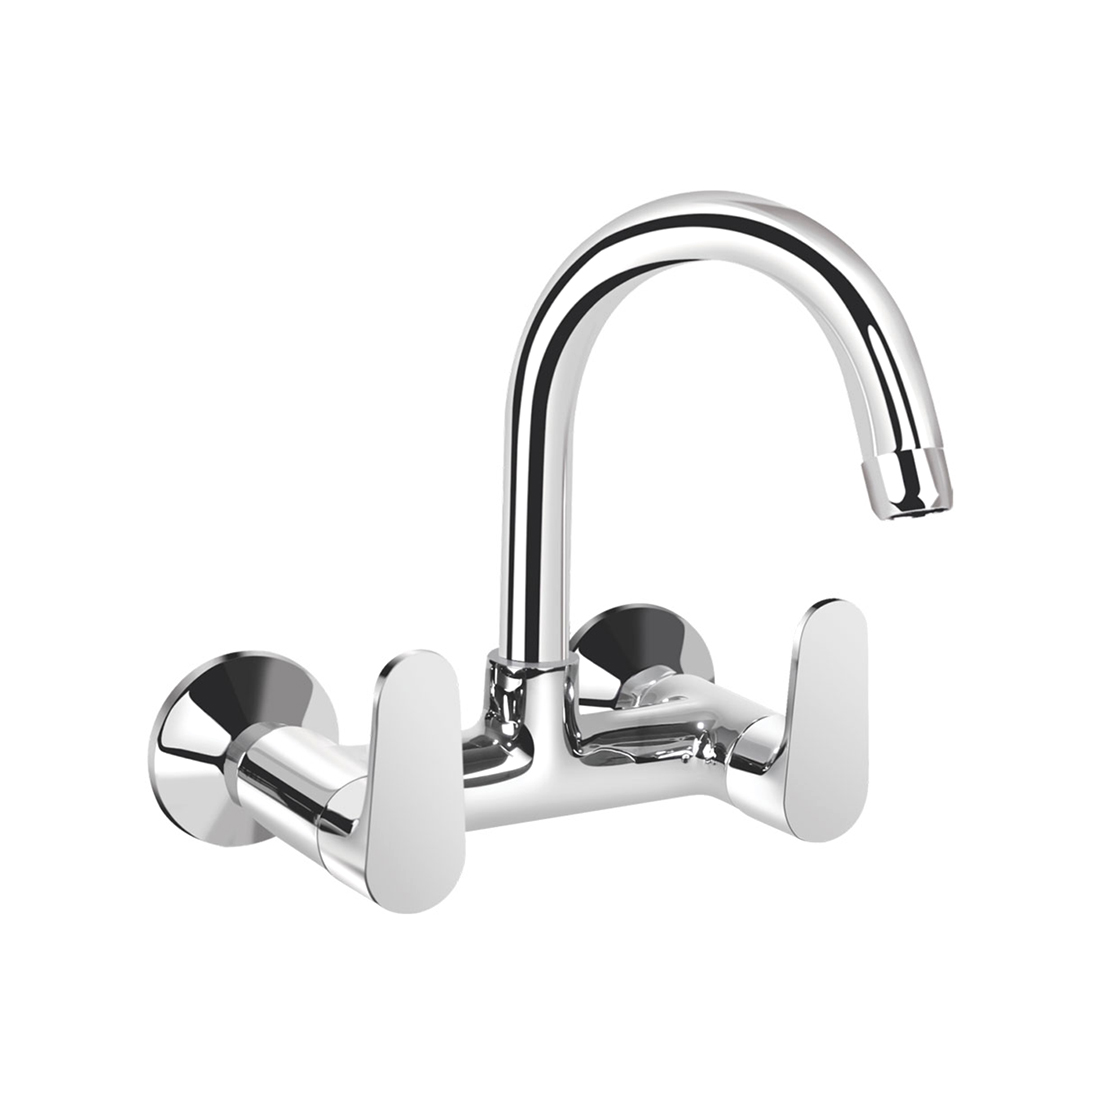 Kerovit Hydrus KB411024 Sink Mixer With Swivel Spout and Flange